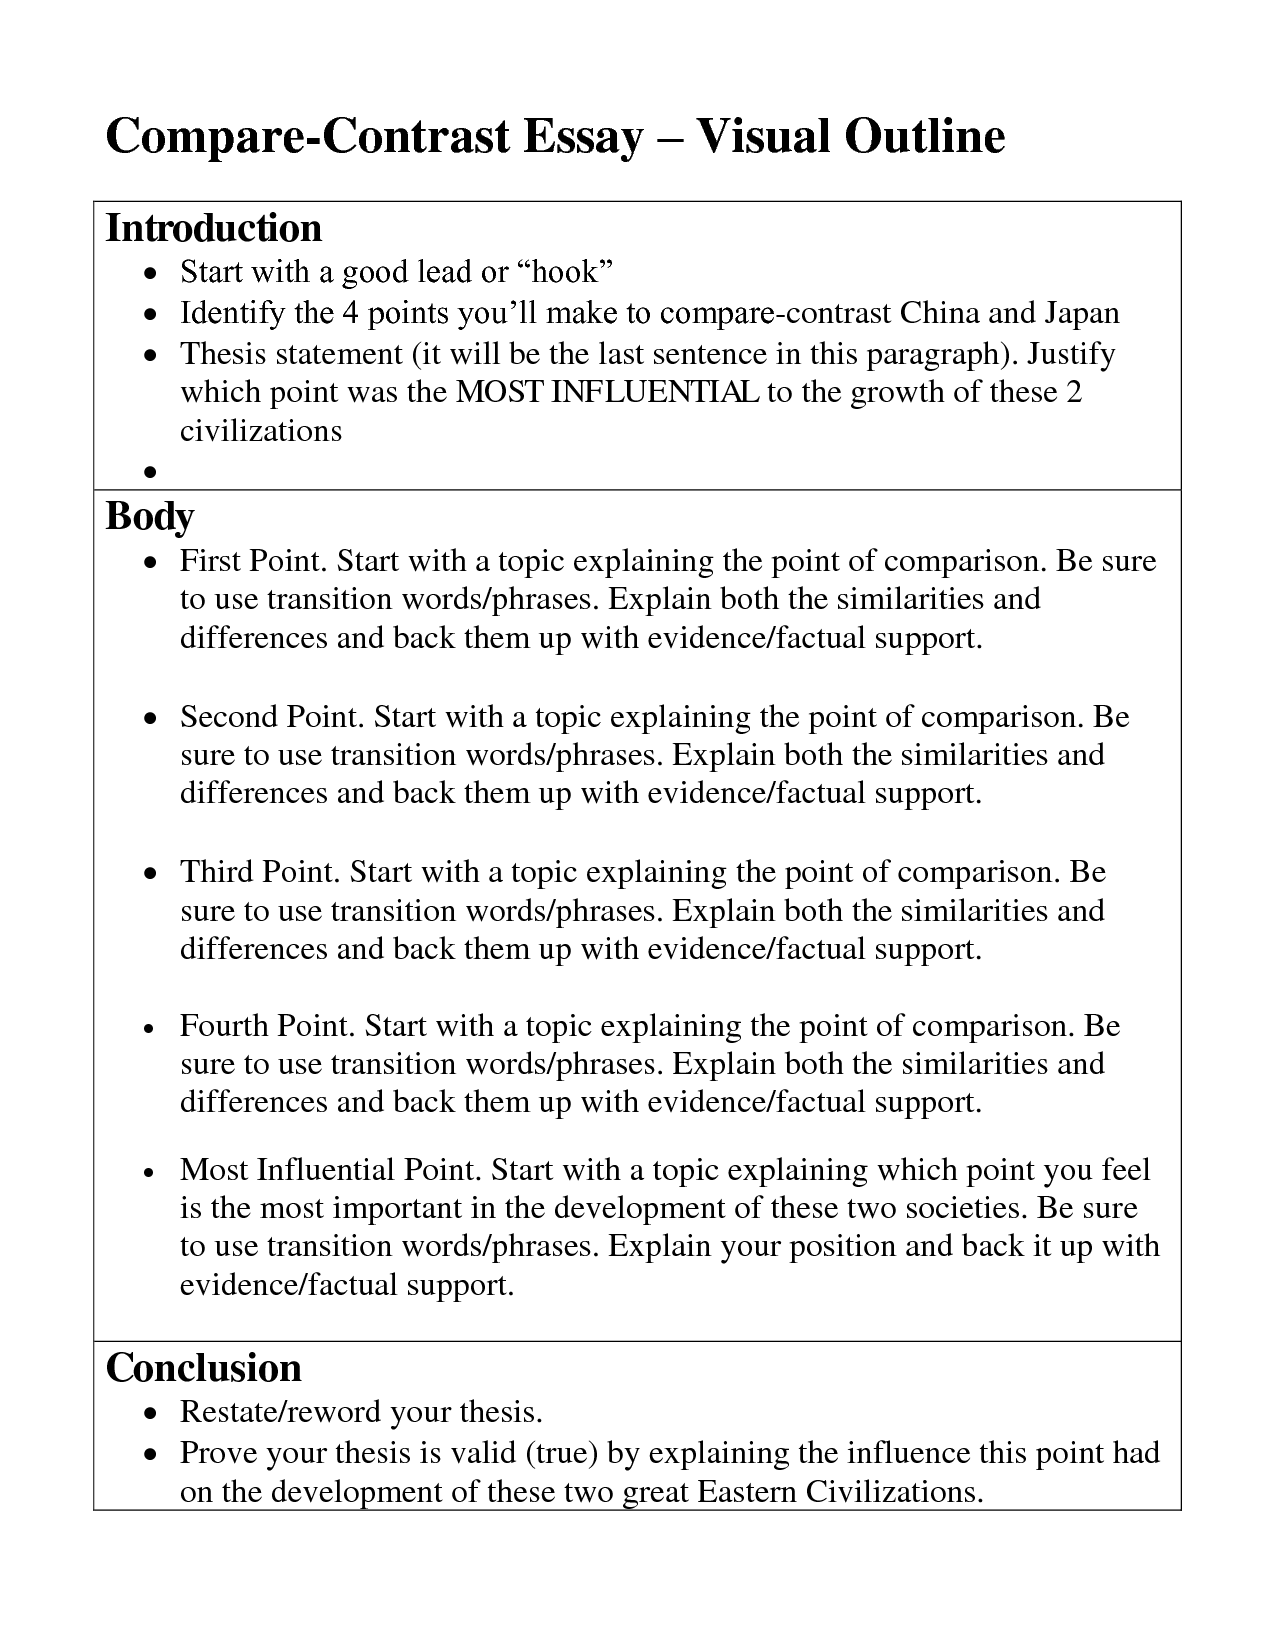 005 How To Write Compare And Contrast Essay Outstanding A Format Block Conclusion Paragraph For Examples